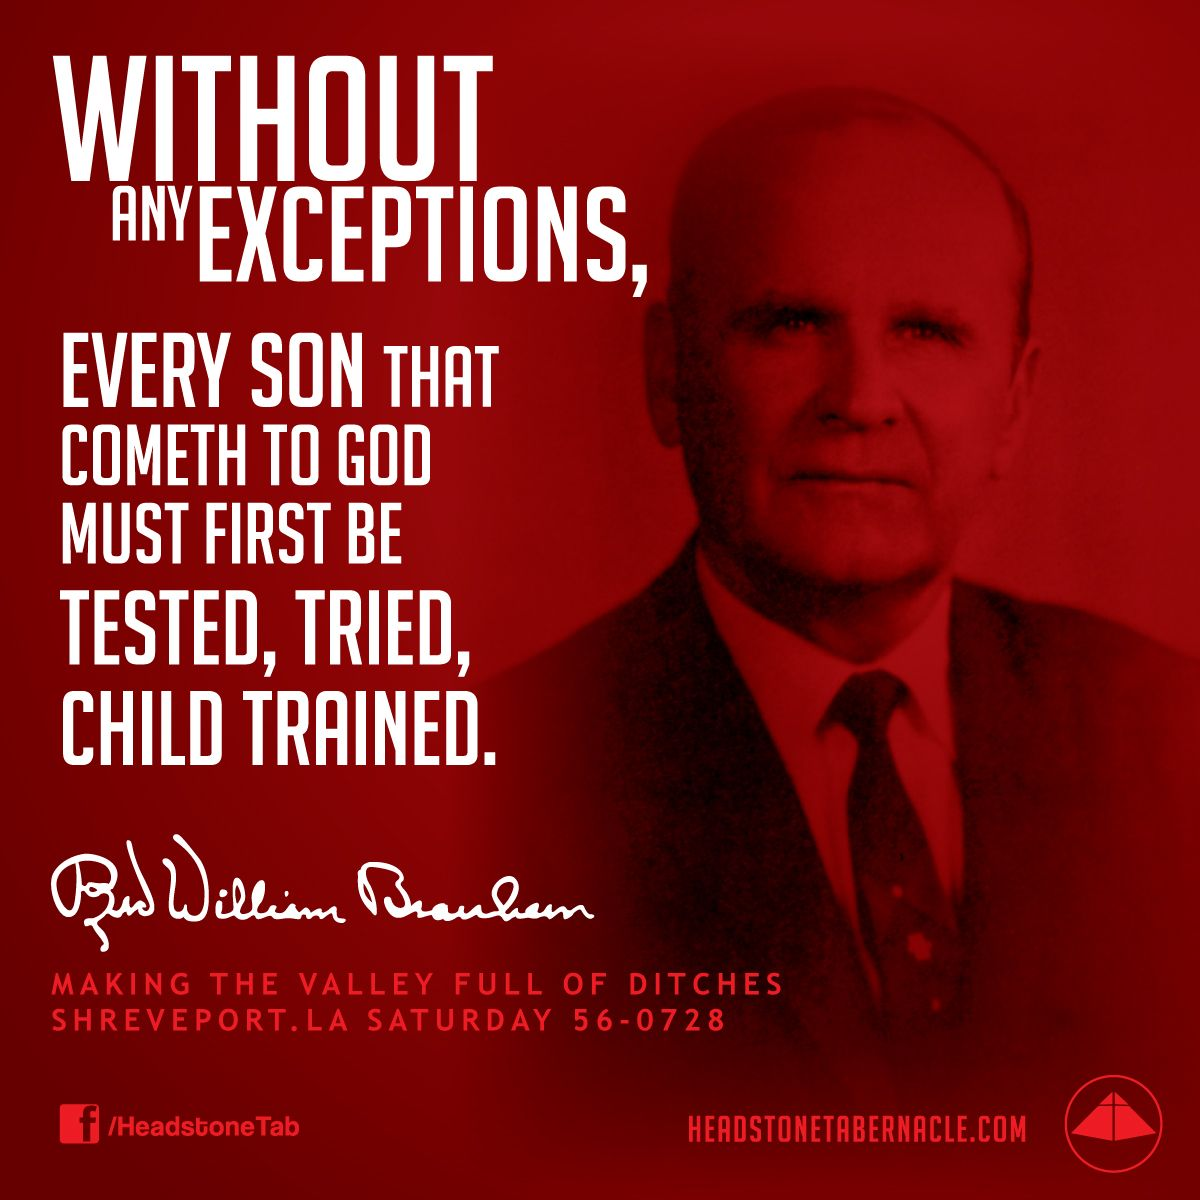 Without any exceptions, every son that cometh to God must ...